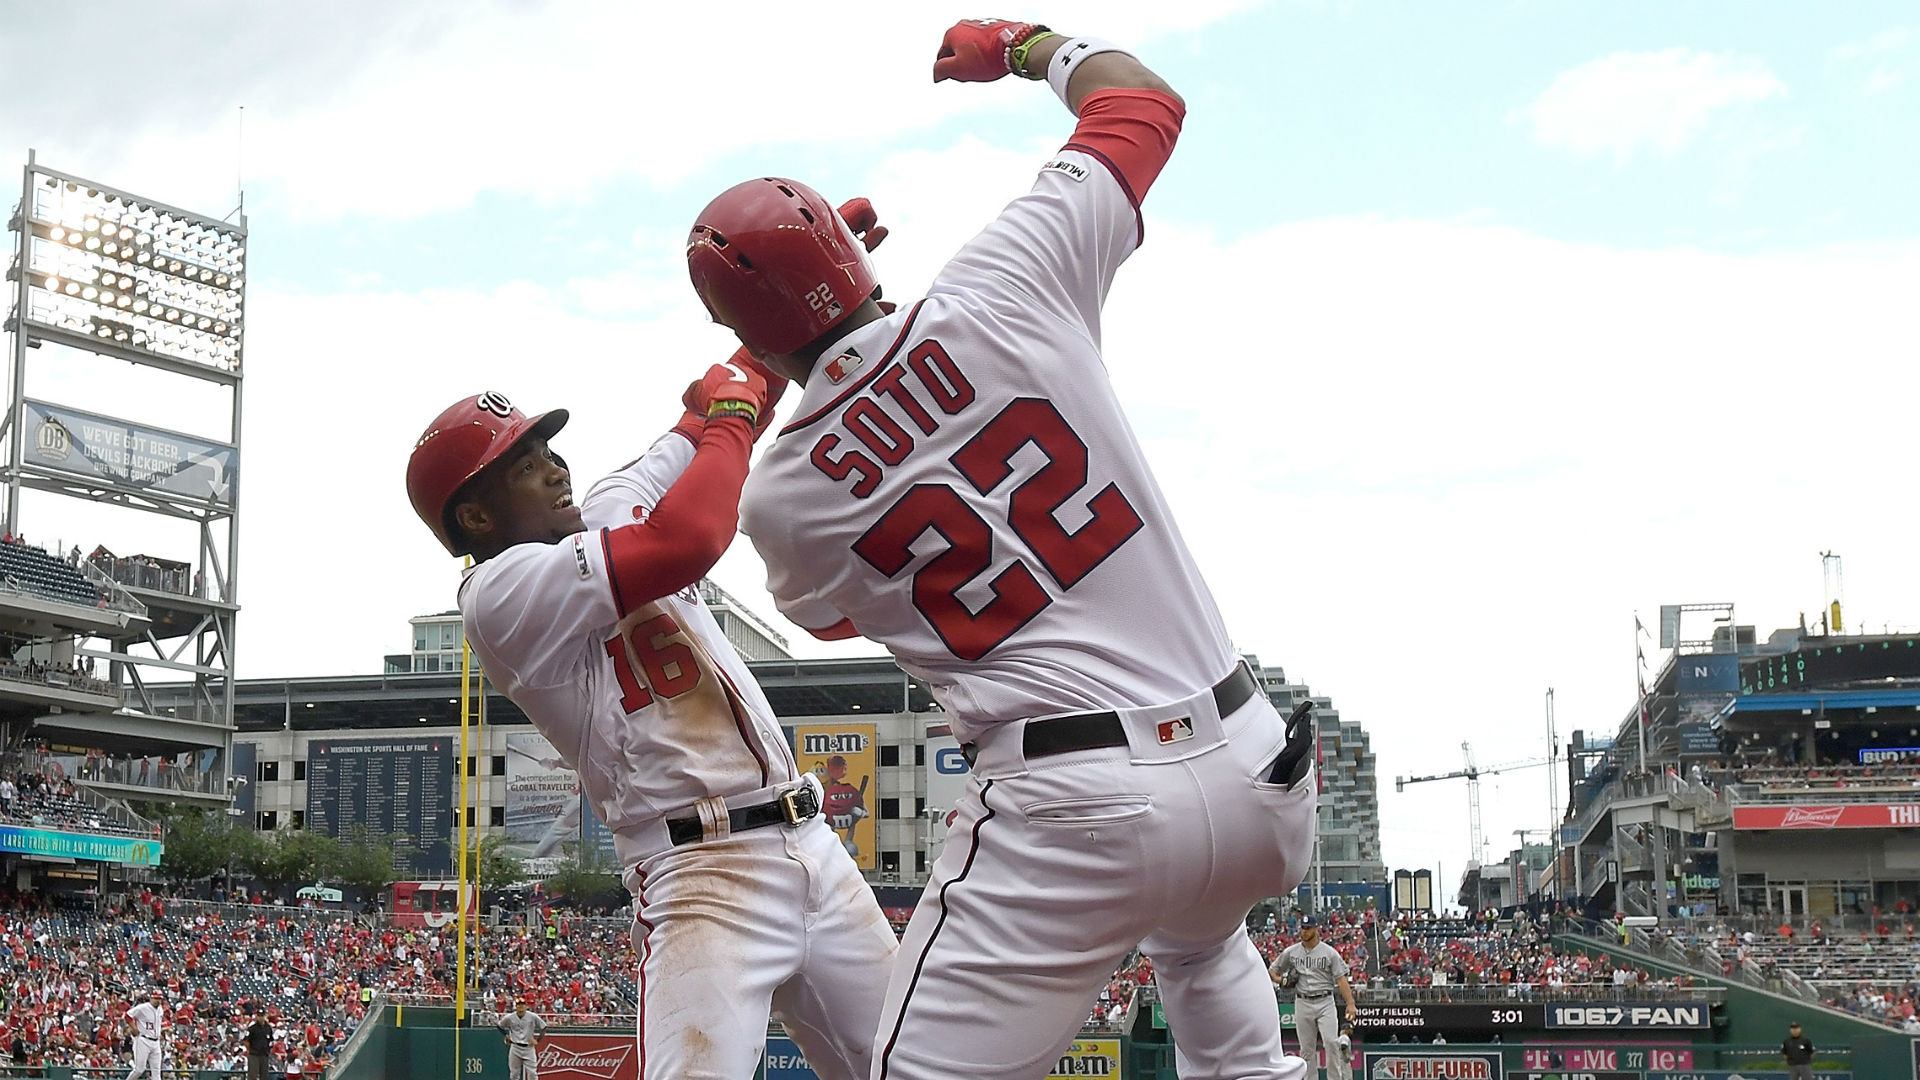 MLB wrap: Nationals make history in extra-innings win over Padres